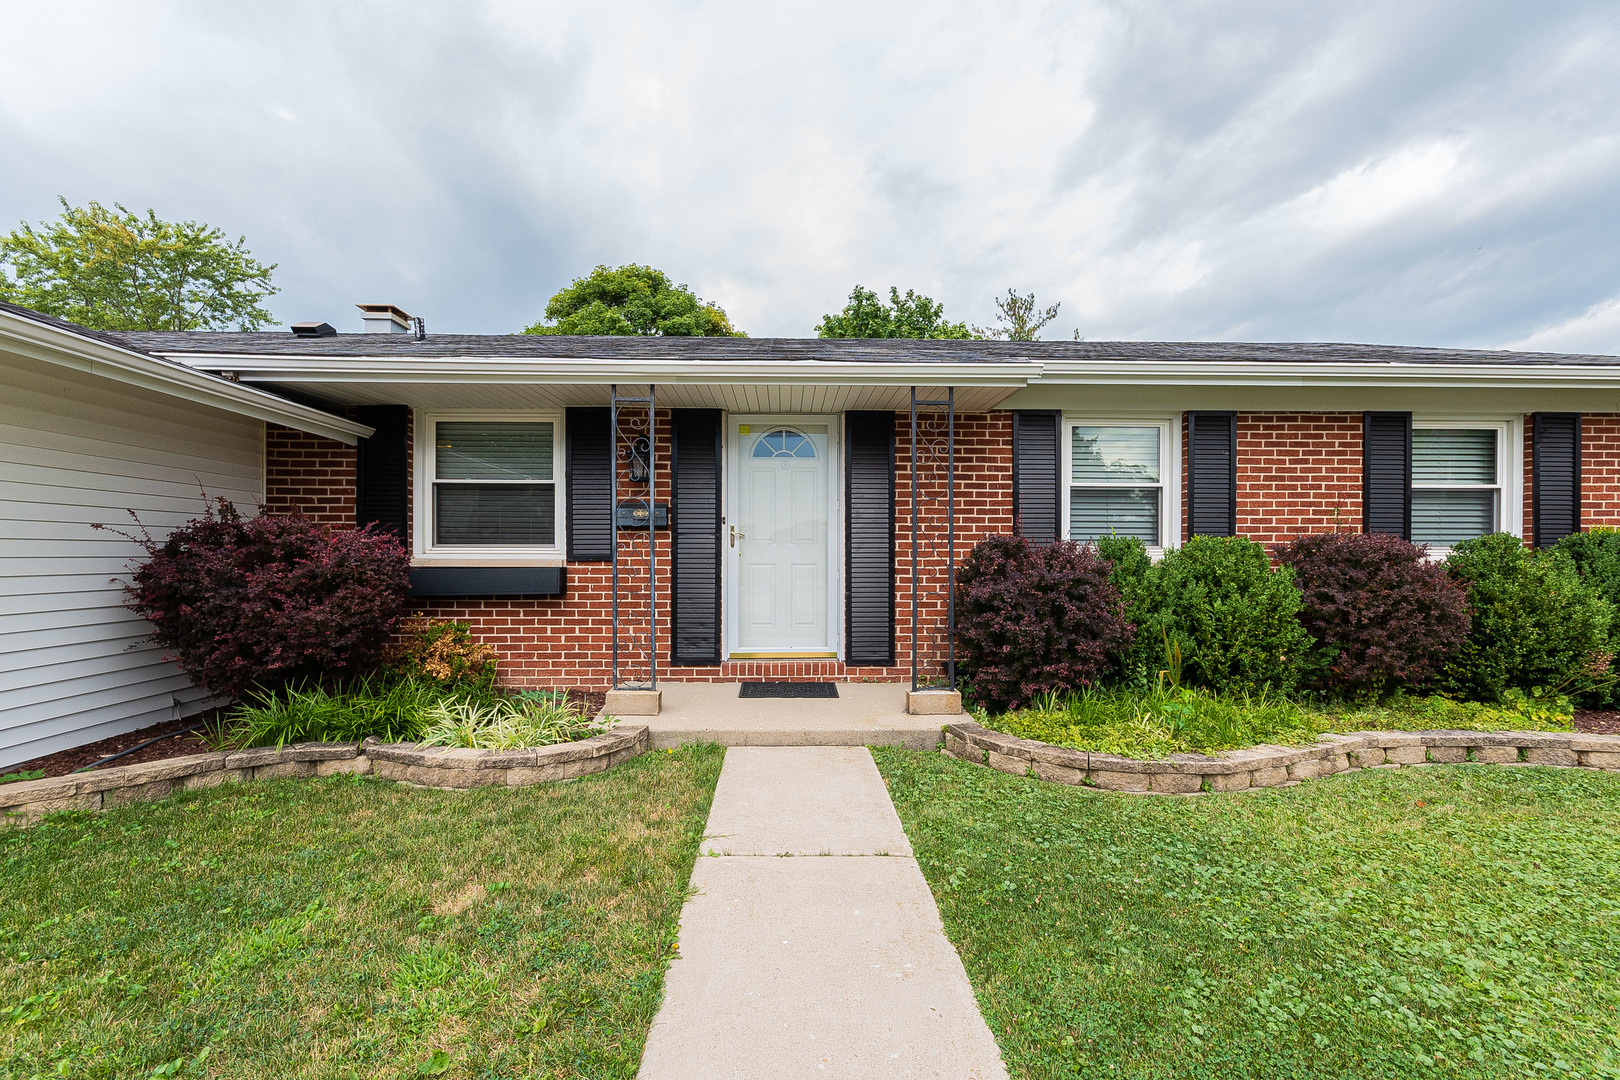 3690 WINSTON, HOFFMAN ESTATES, Illinois, 60192